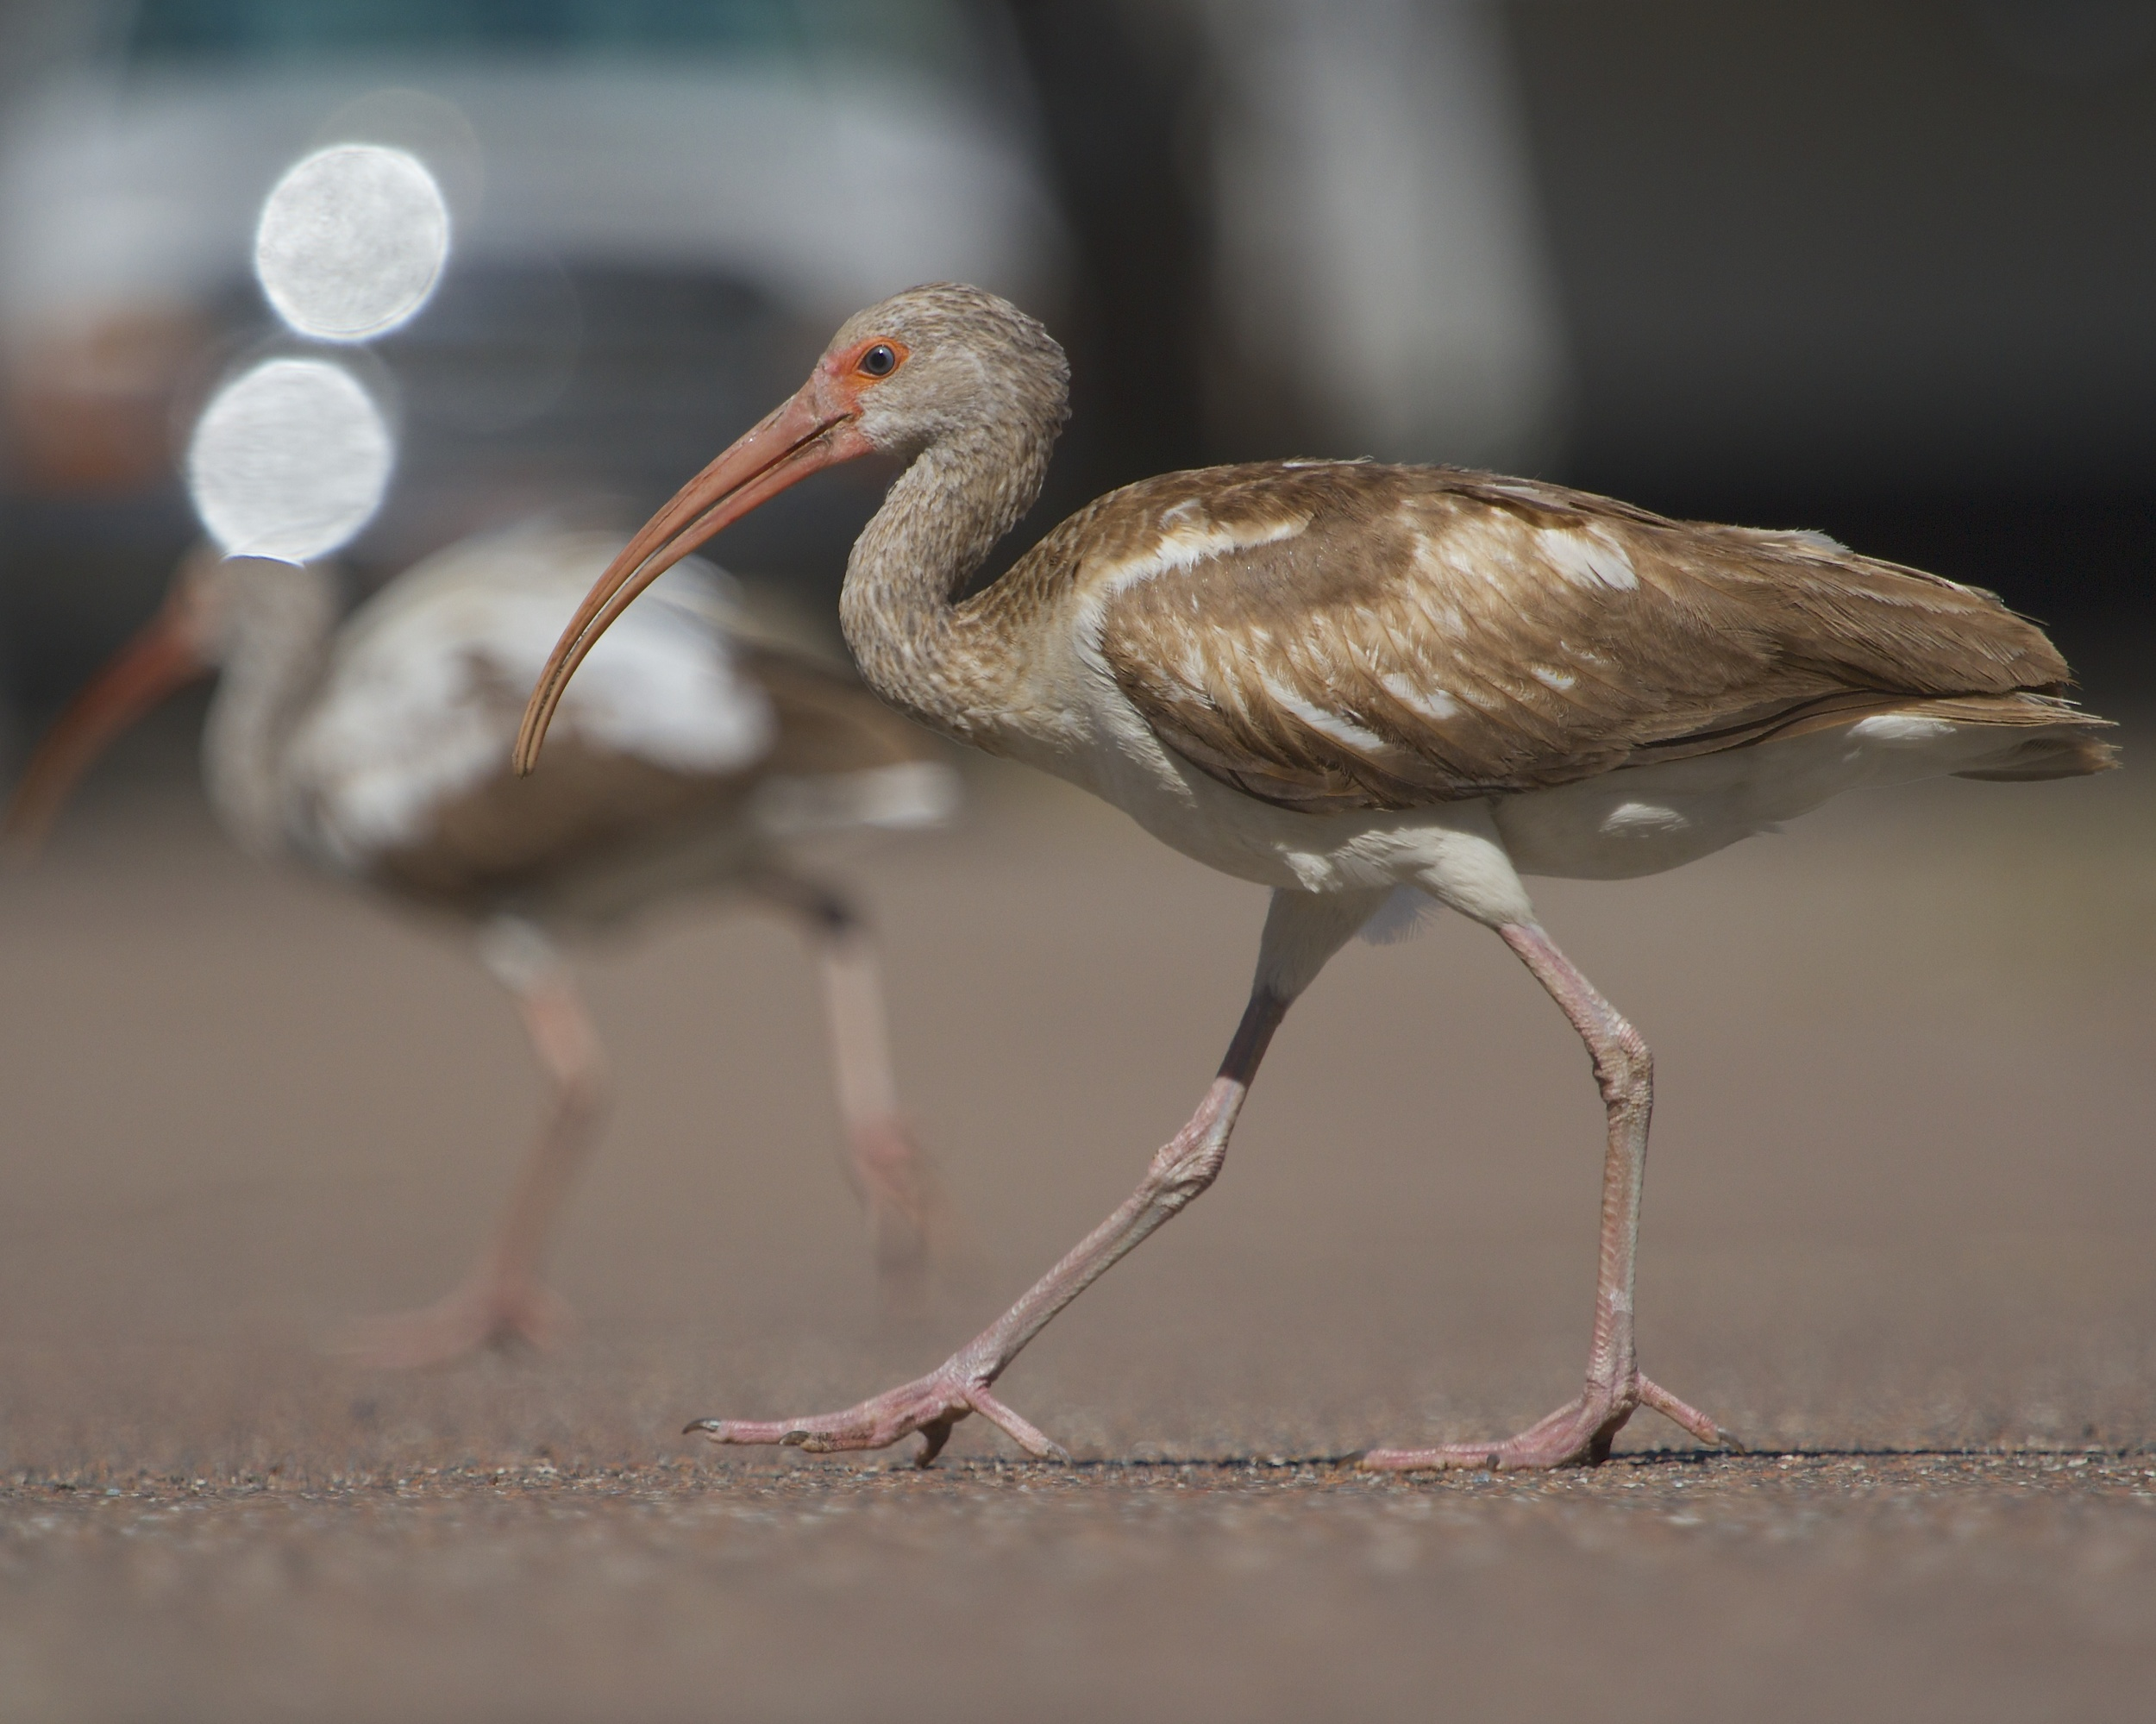 So why did the Ibis cross the road?    To see you of course!